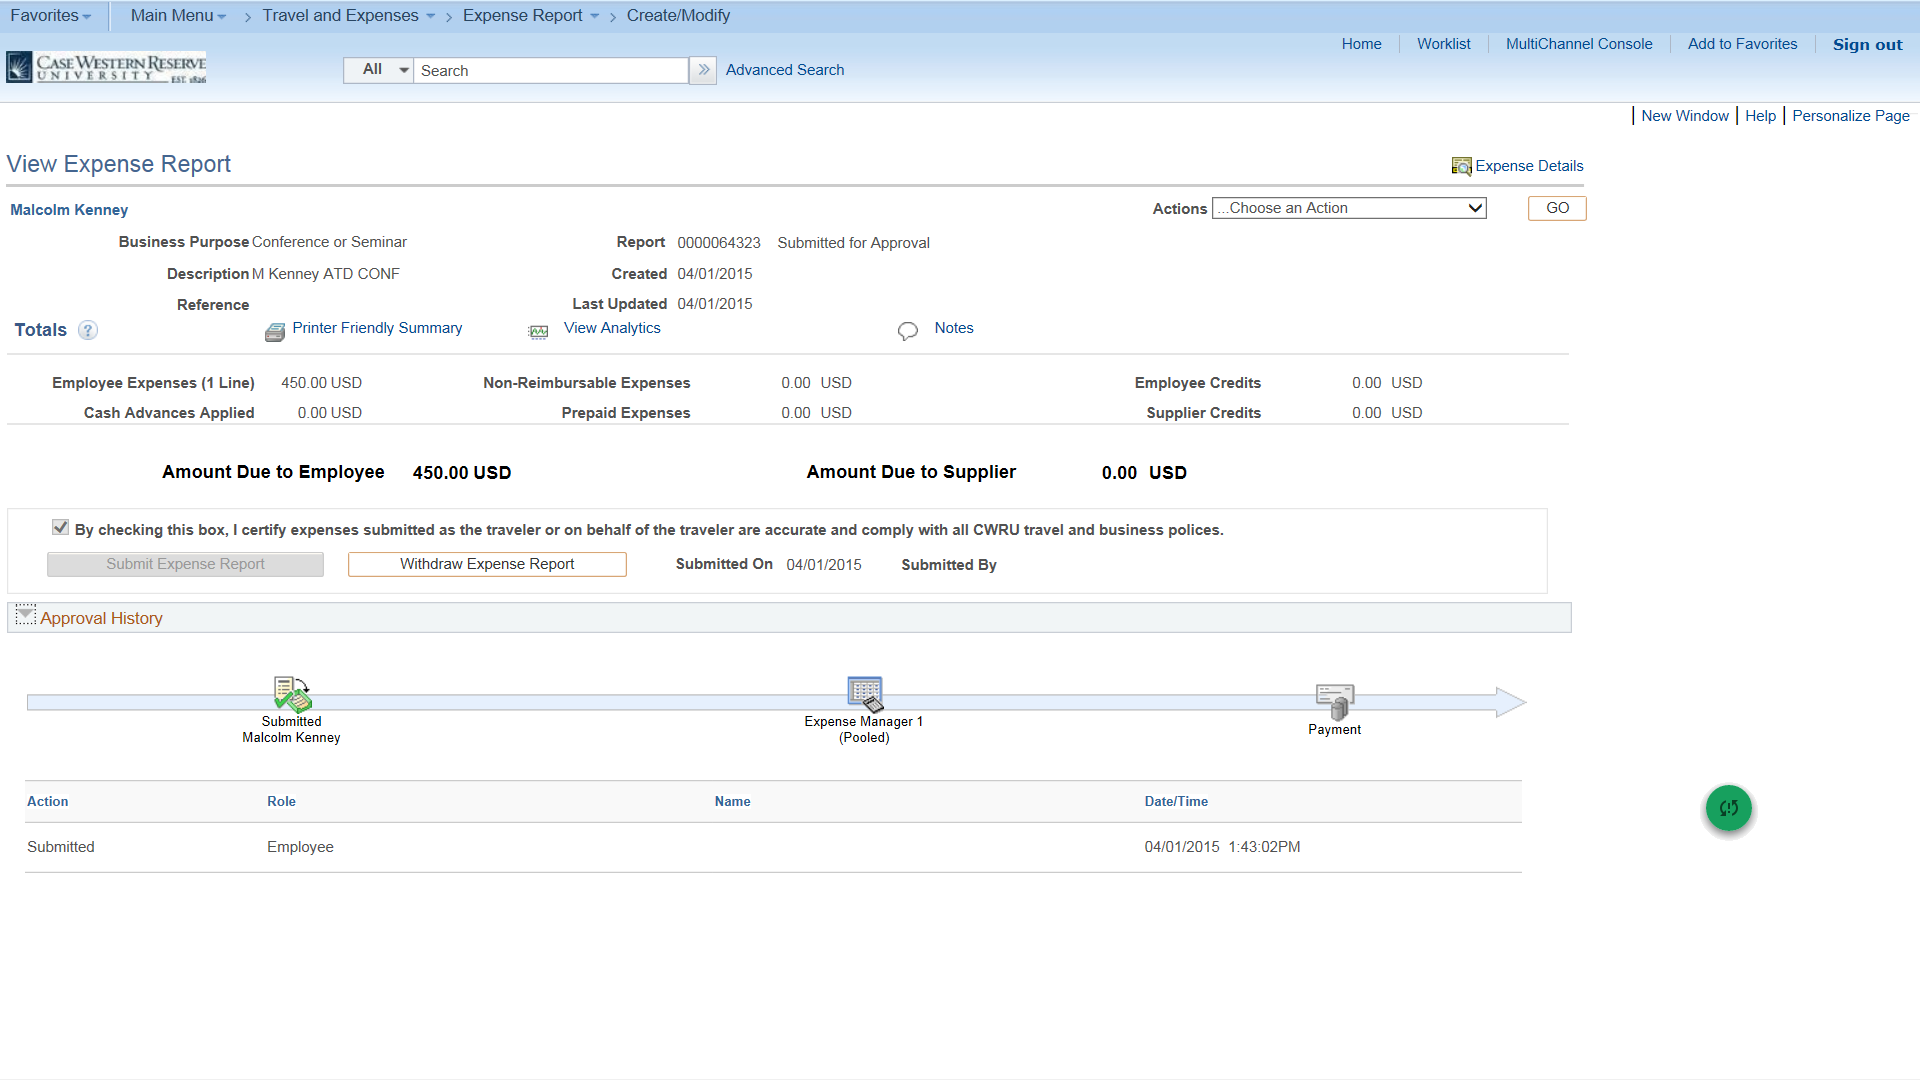 PeopleSoft Financials screen shot displaying View Expense Report form